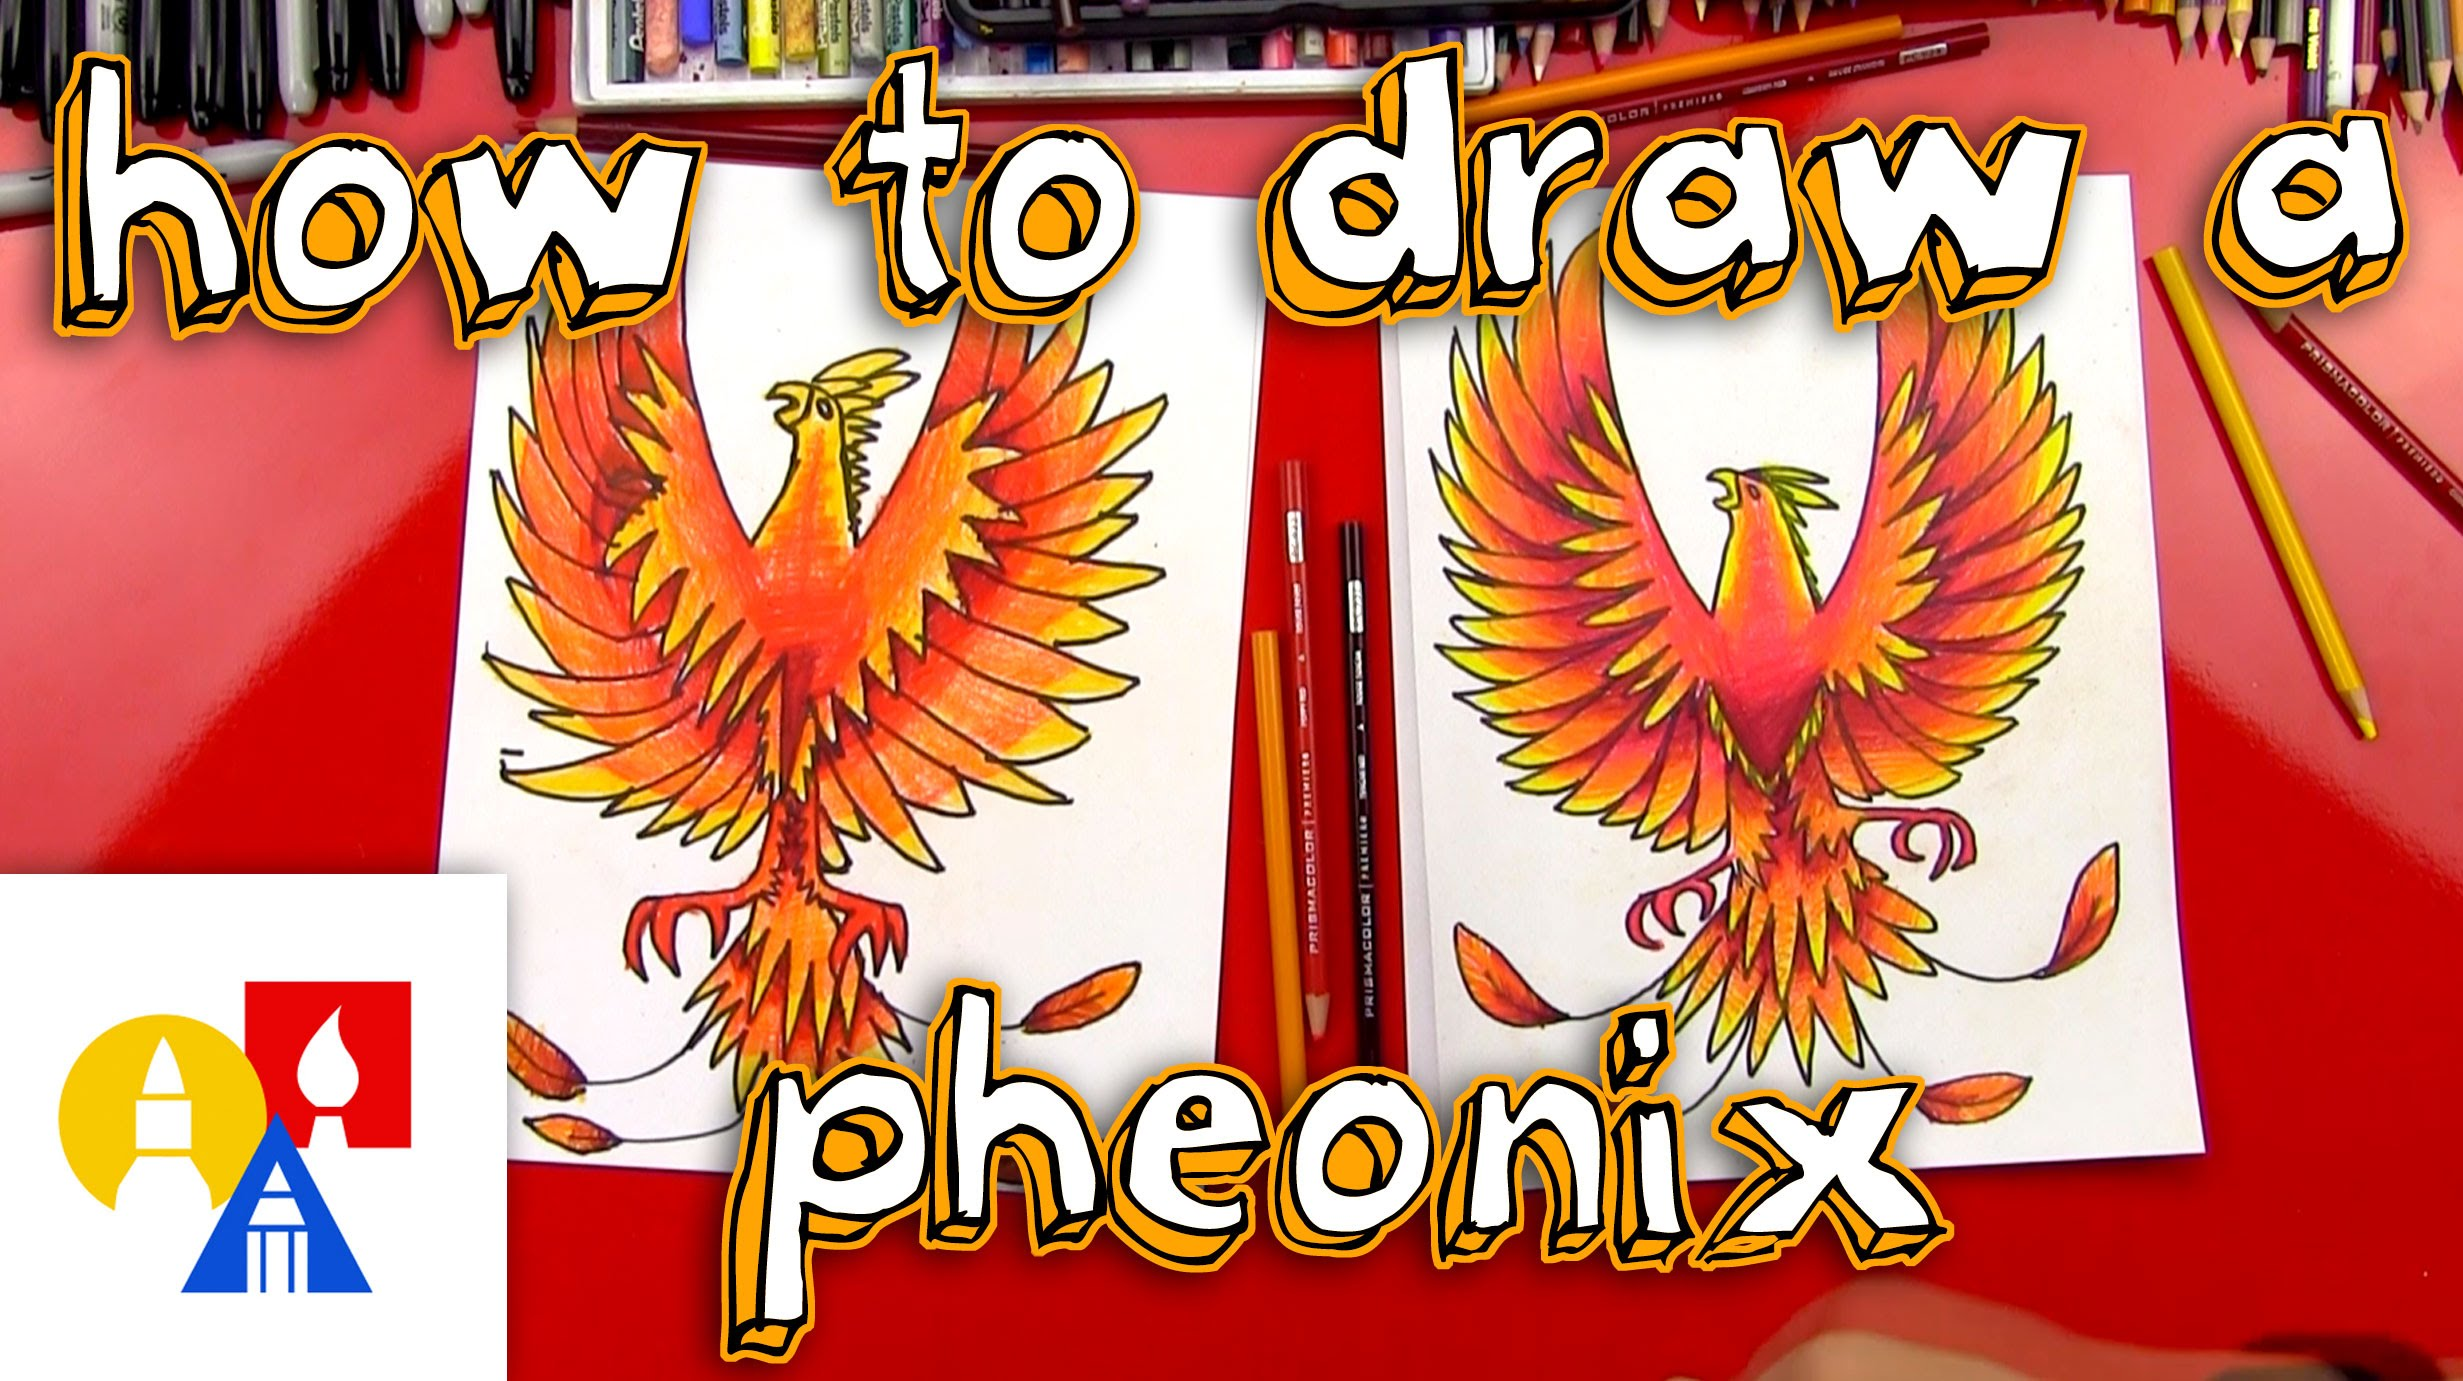 Phoenix clipart fawkes. How to draw a